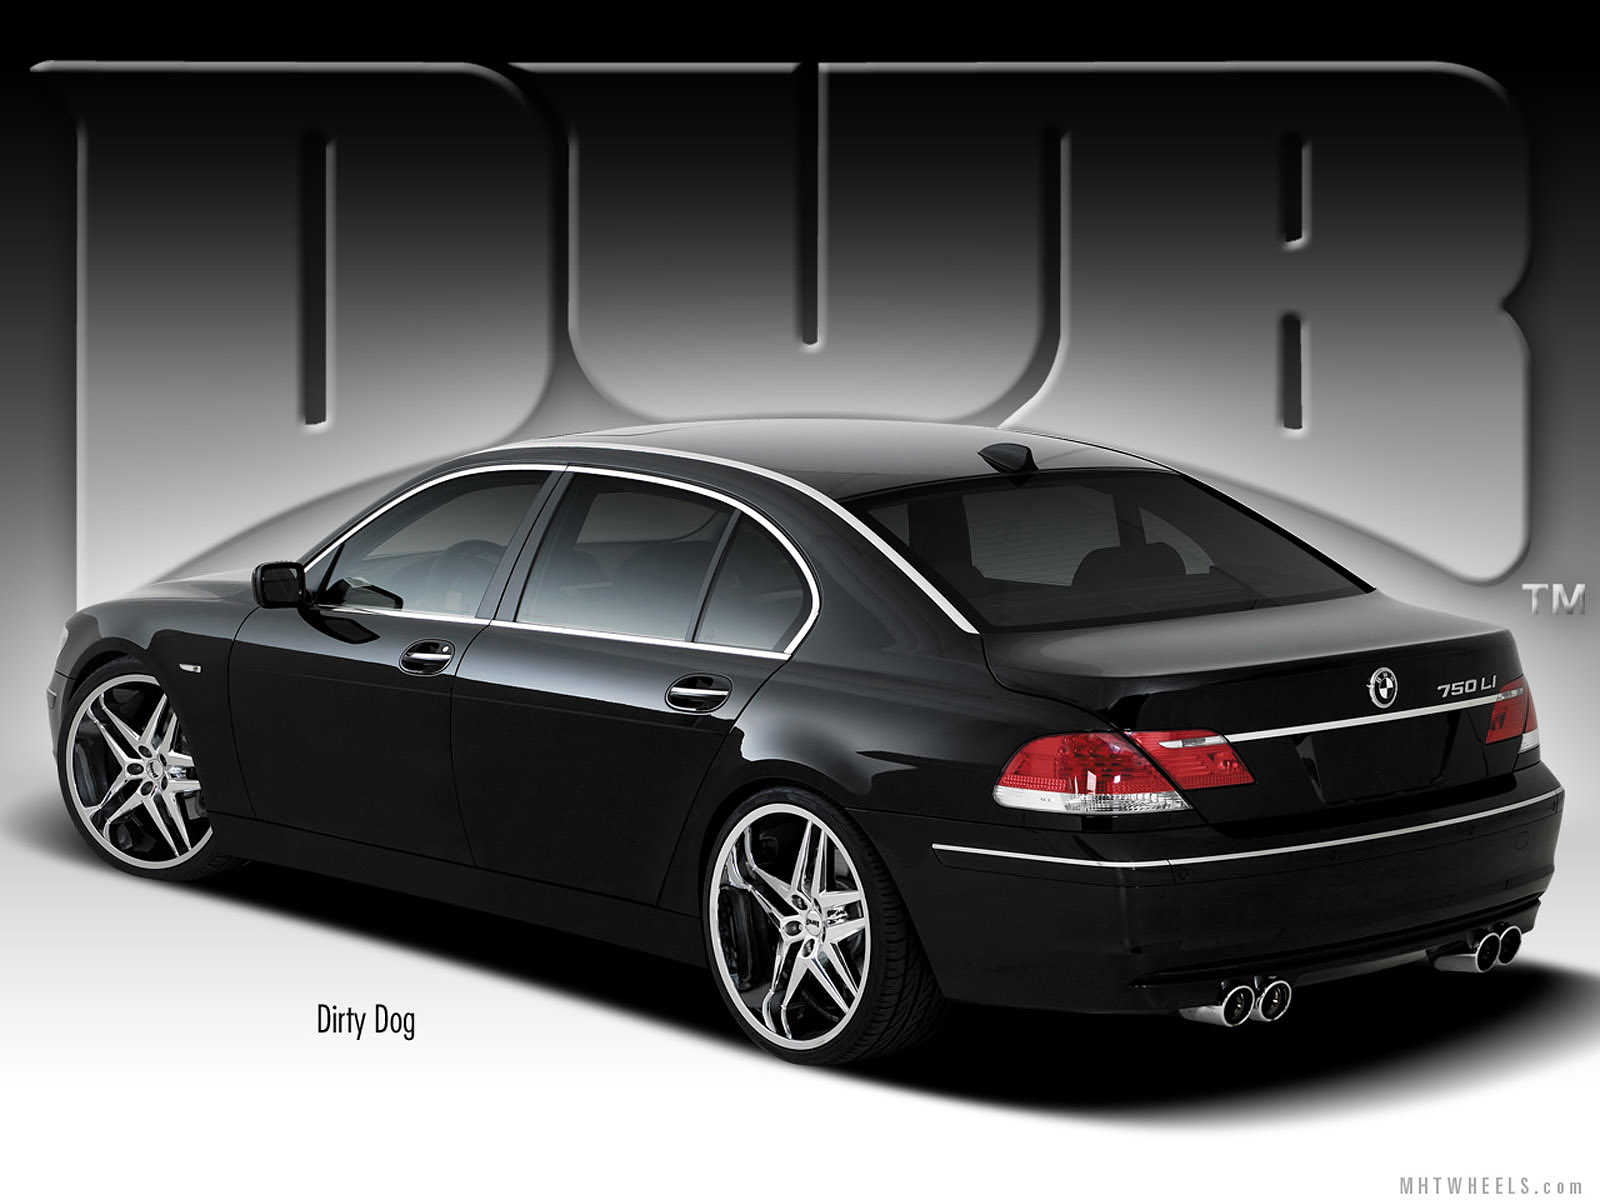 Free DUB Edition BMW 750i Wallpapers, Free DUB Edition BMW 750i HD